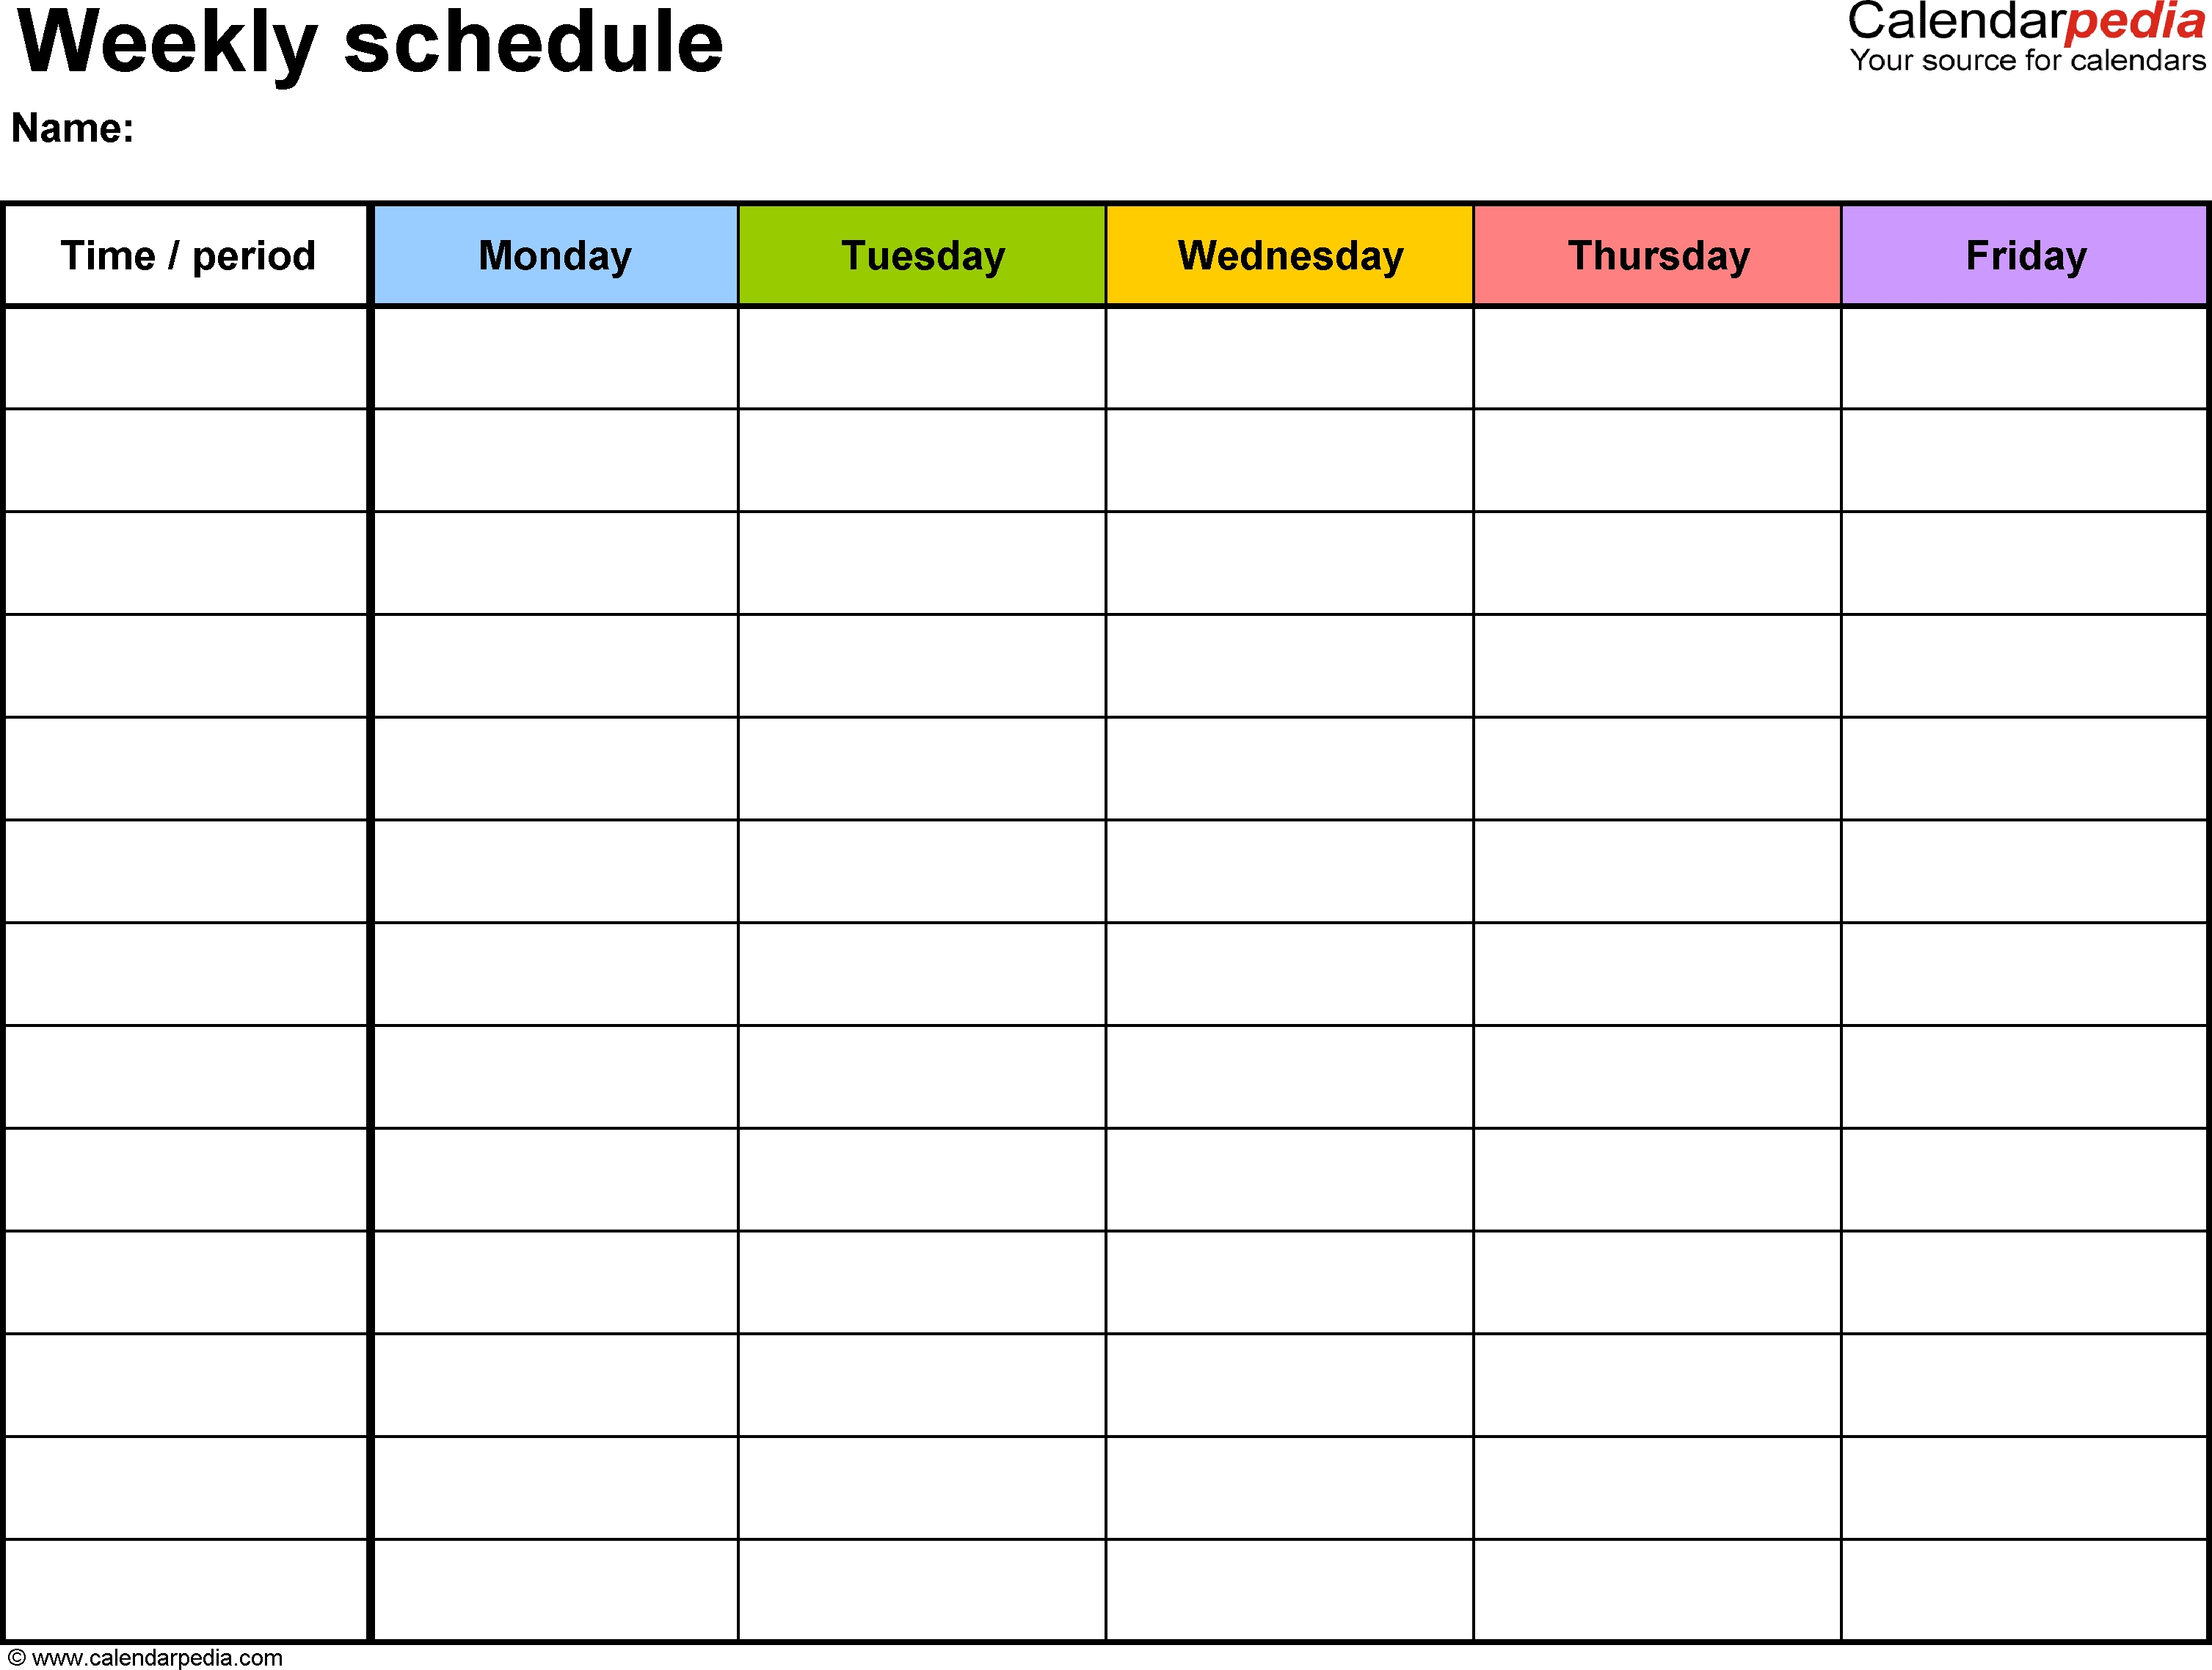 Free Weekly Schedule Templates For Word - 18 Templates-Monday To Friday Monthly Calendar